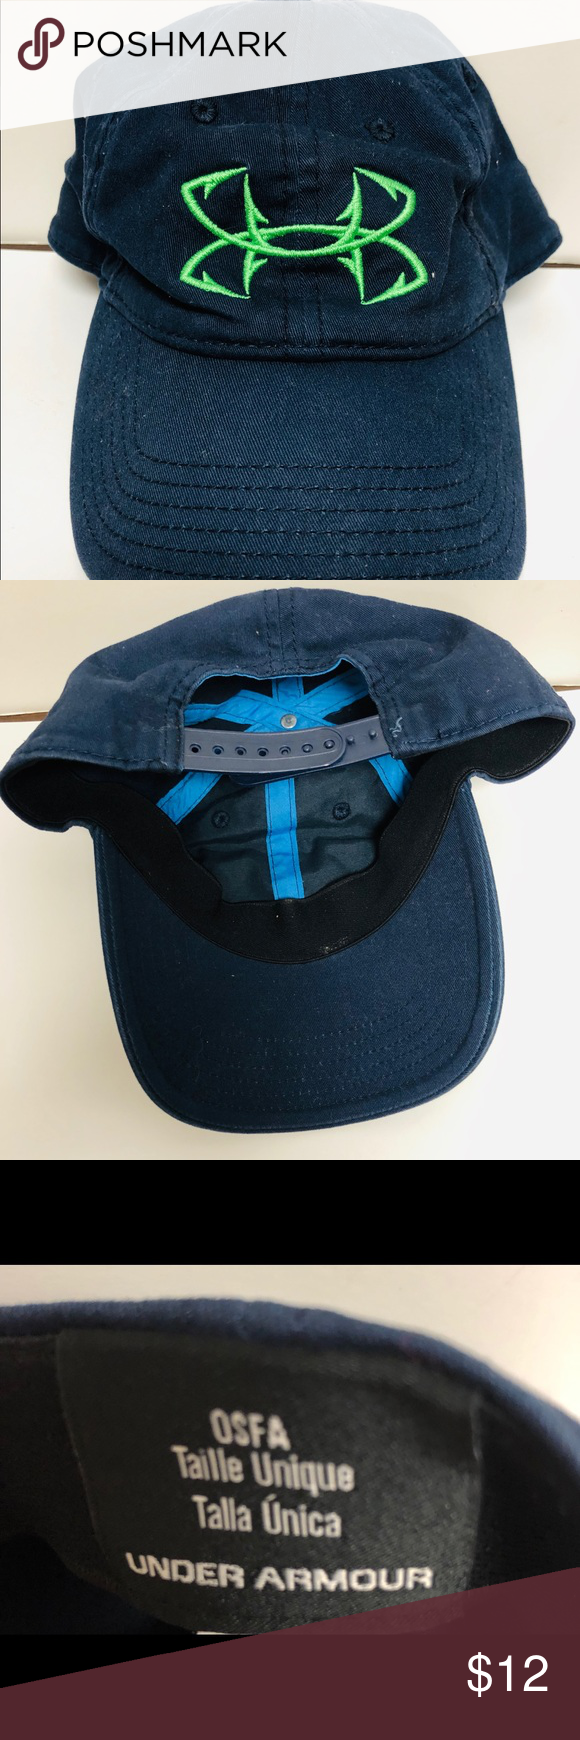 new style 2acec 79e9b Womens Under Armour hat Navy blue hat with lime green logo. One Size Fits  All